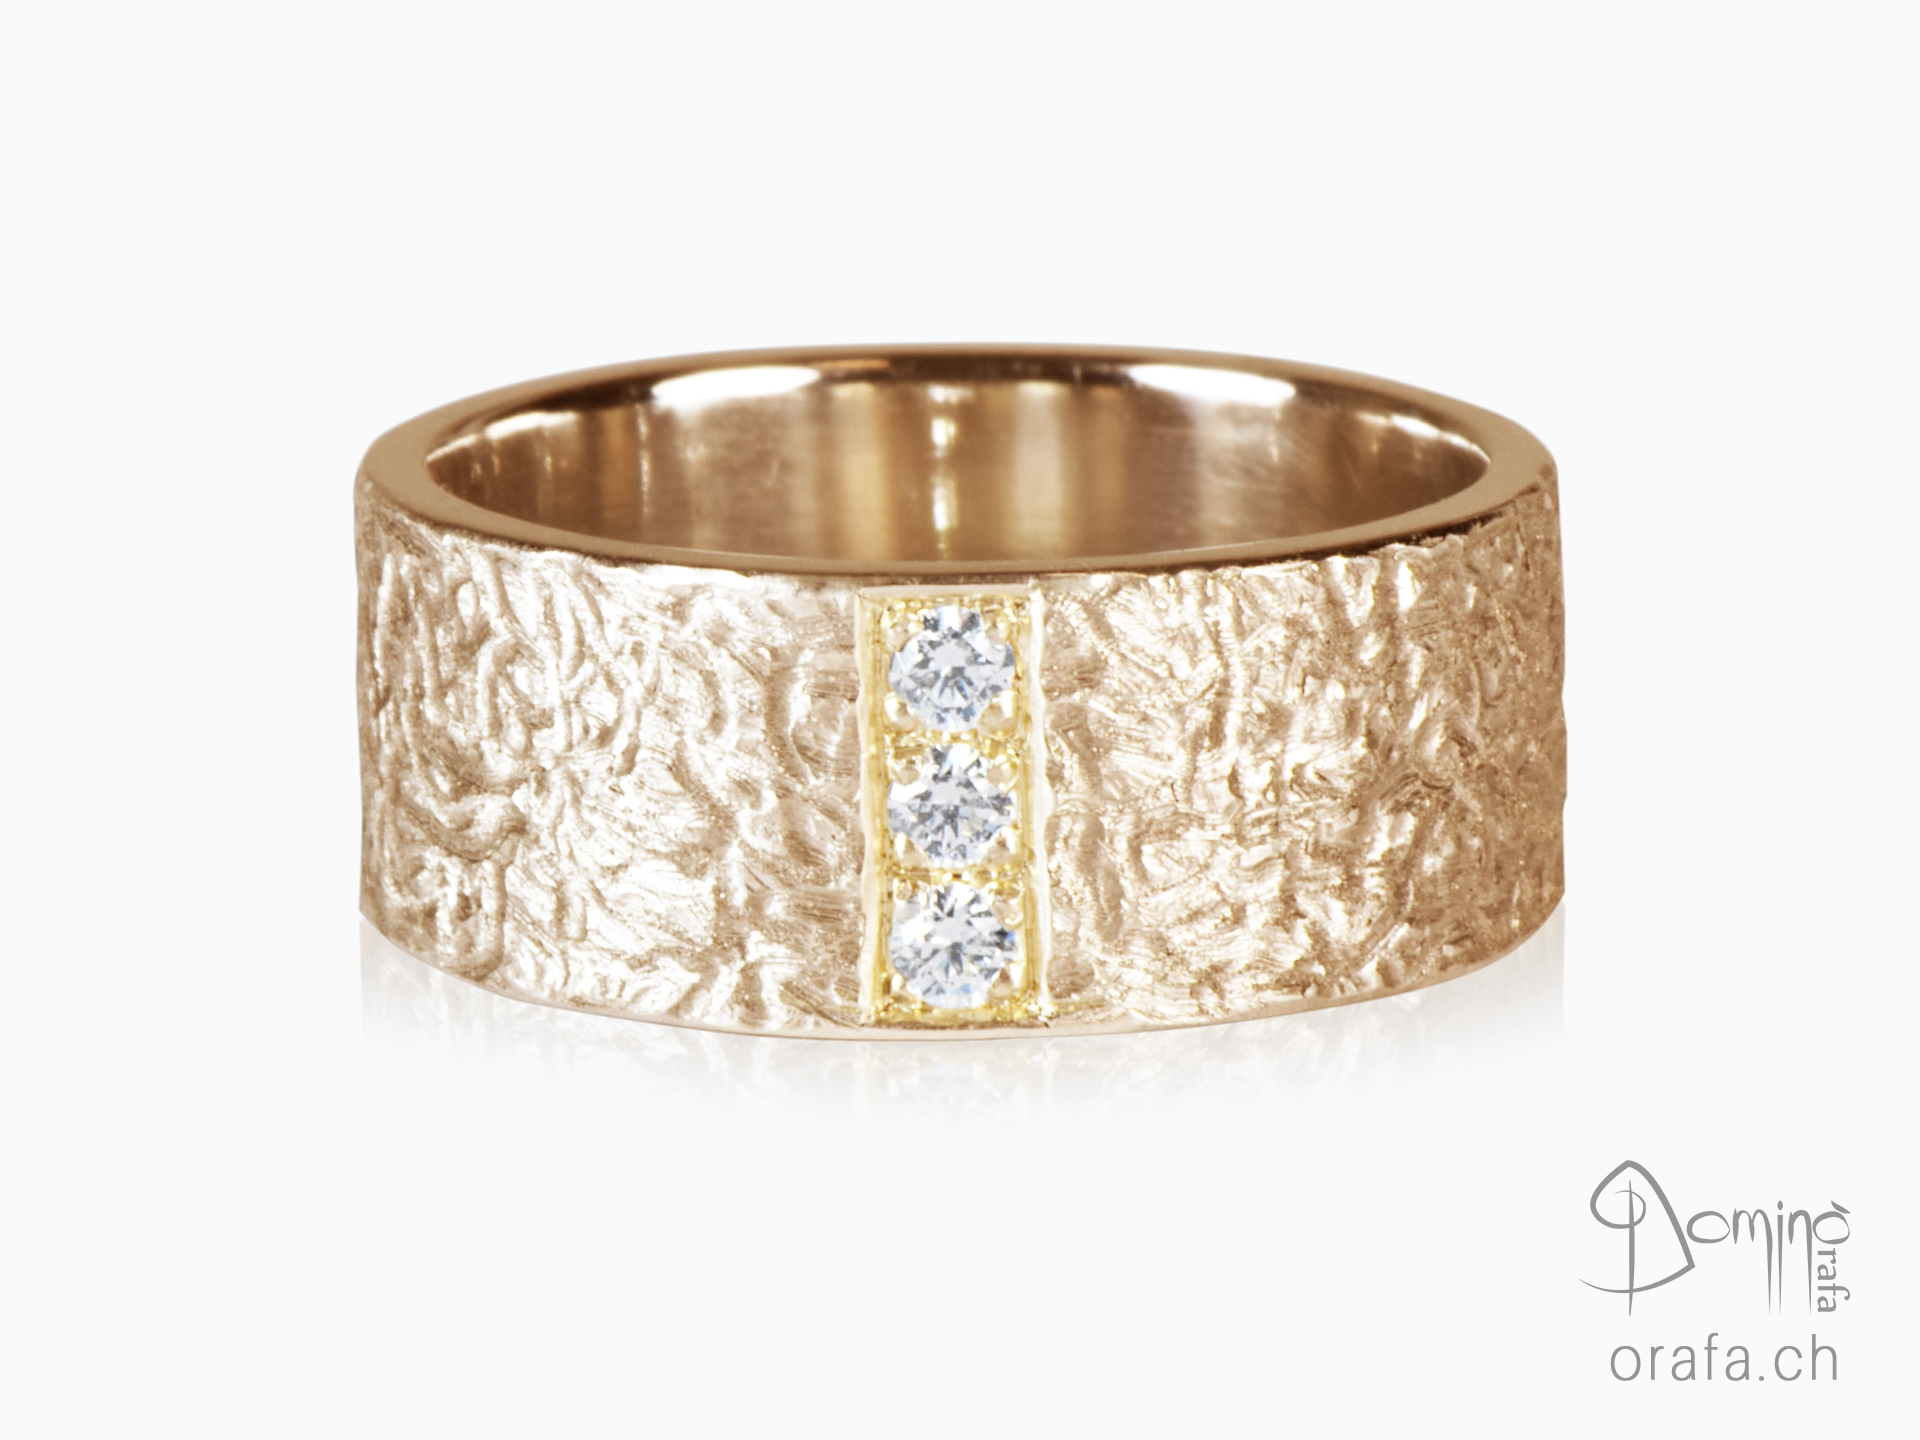 Corteccia ring with diamonds